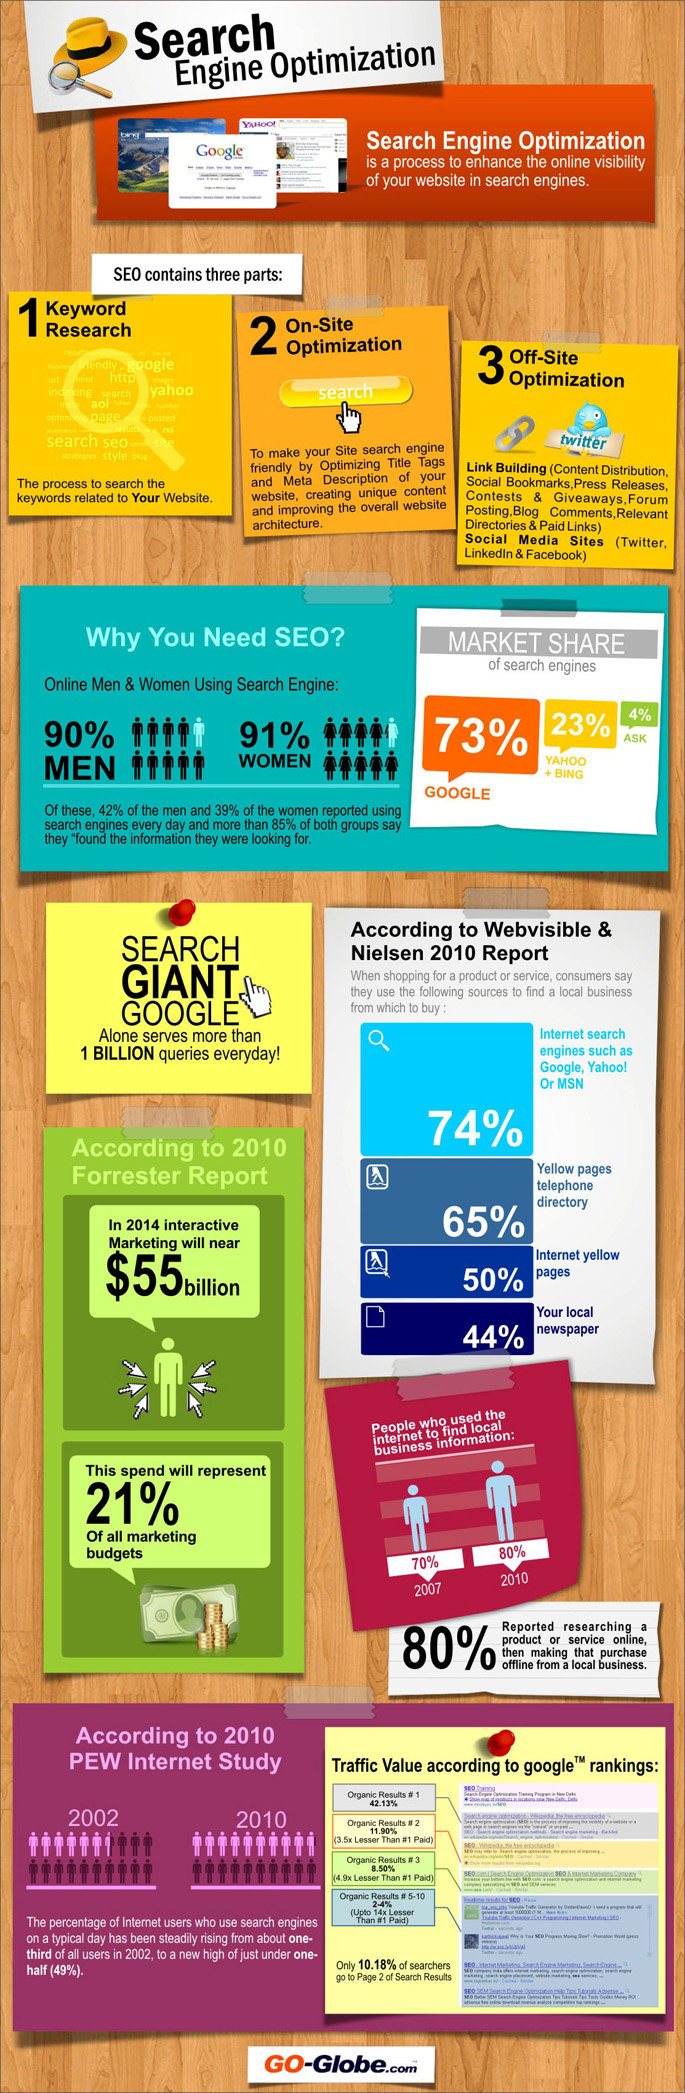 Search engine optimaization #infographic